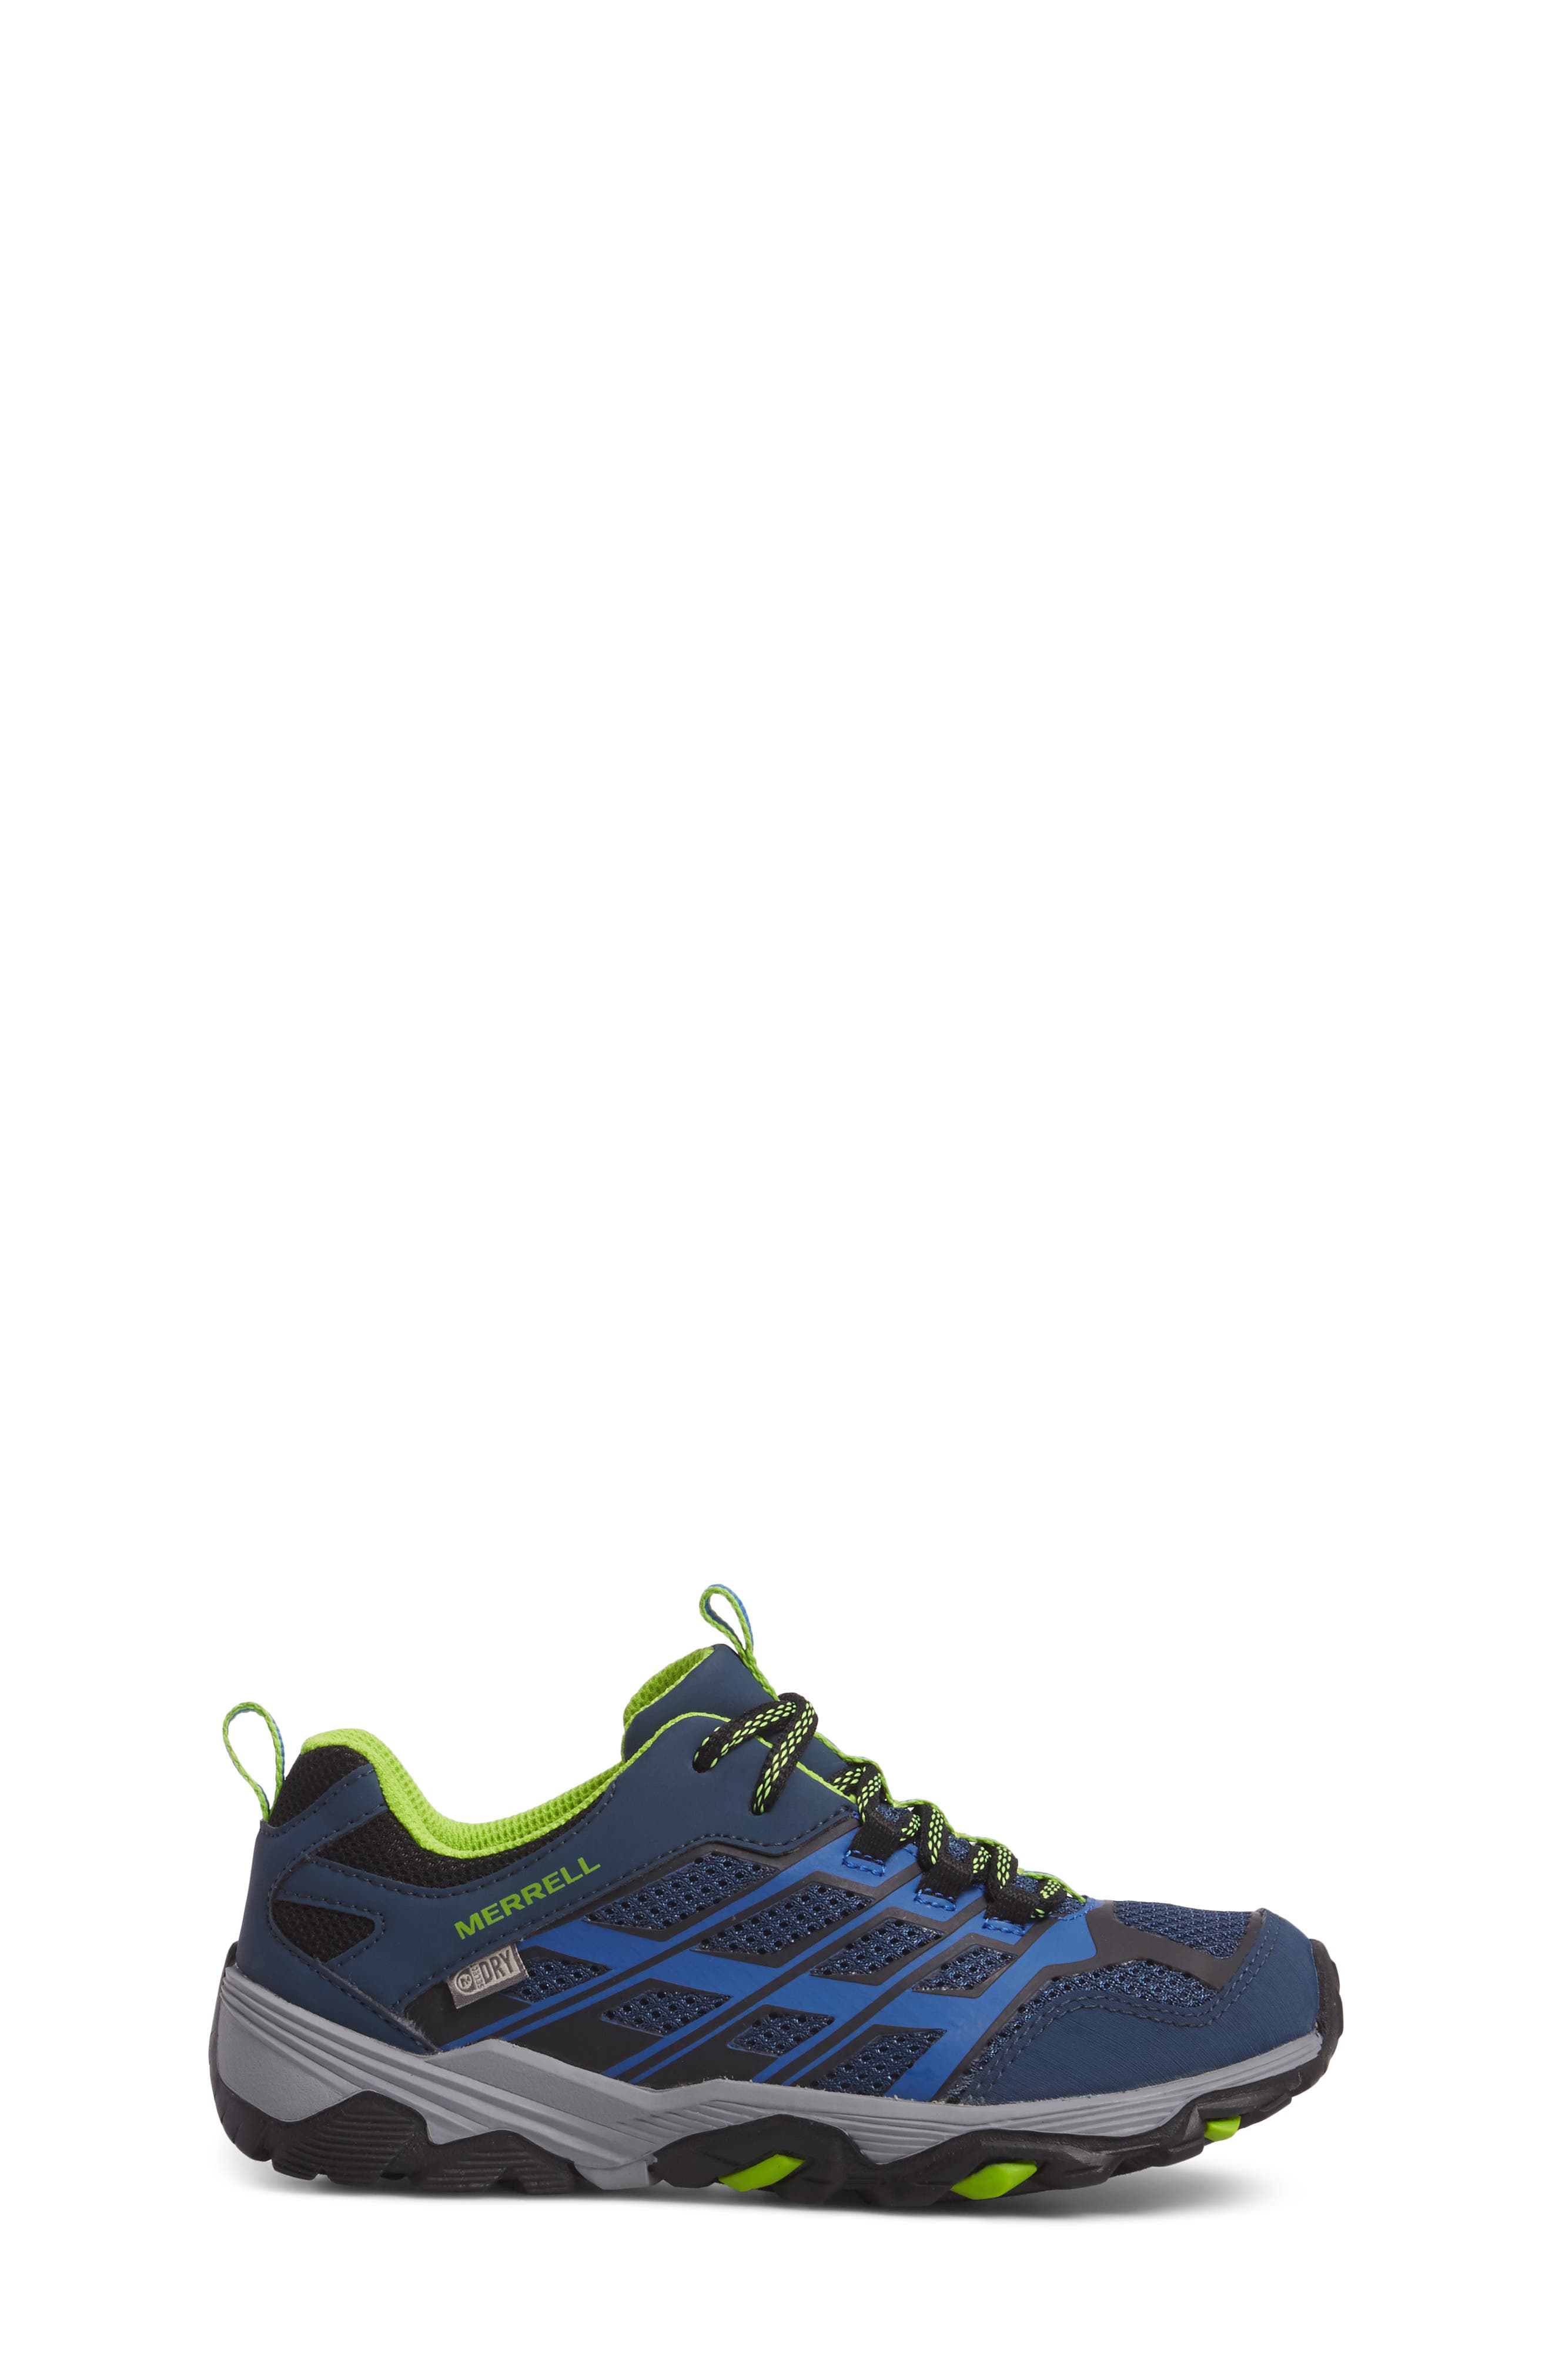 Moab FST Polar Low Waterproof Sneaker,                             Alternate thumbnail 3, color,                             Navy/ Blue